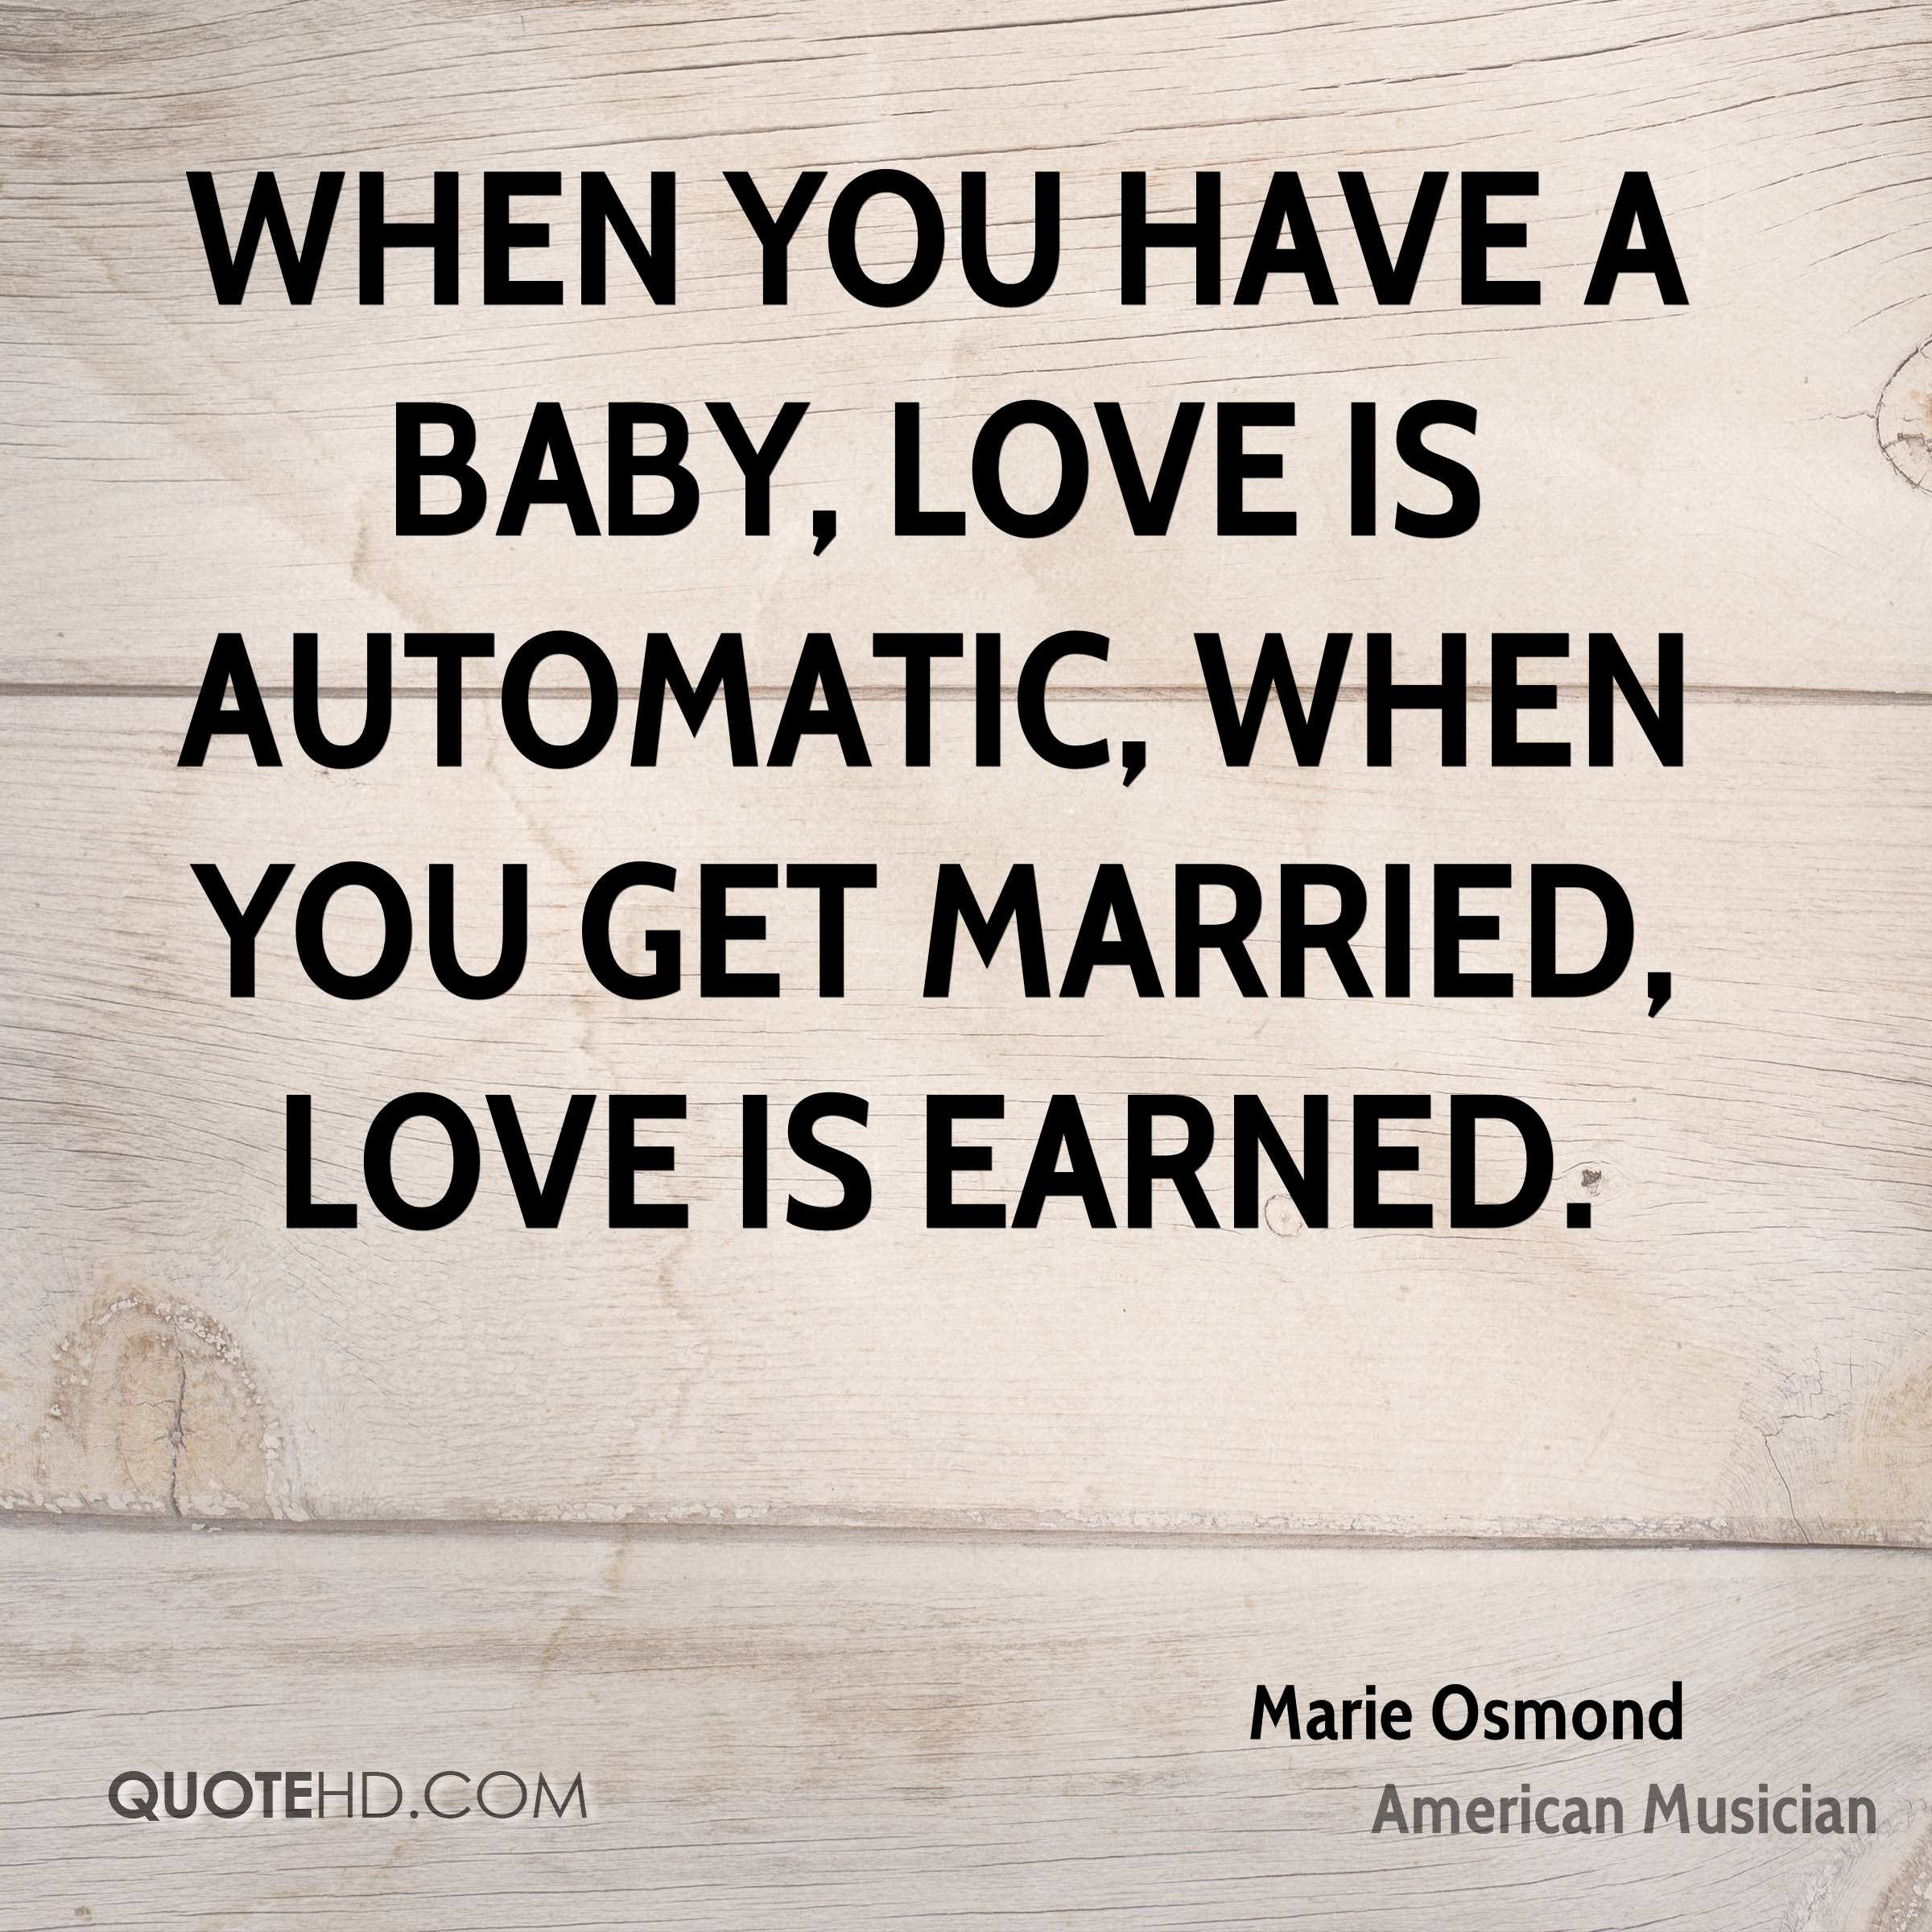 Marie Osmond Marriage Quotes | QuoteHD